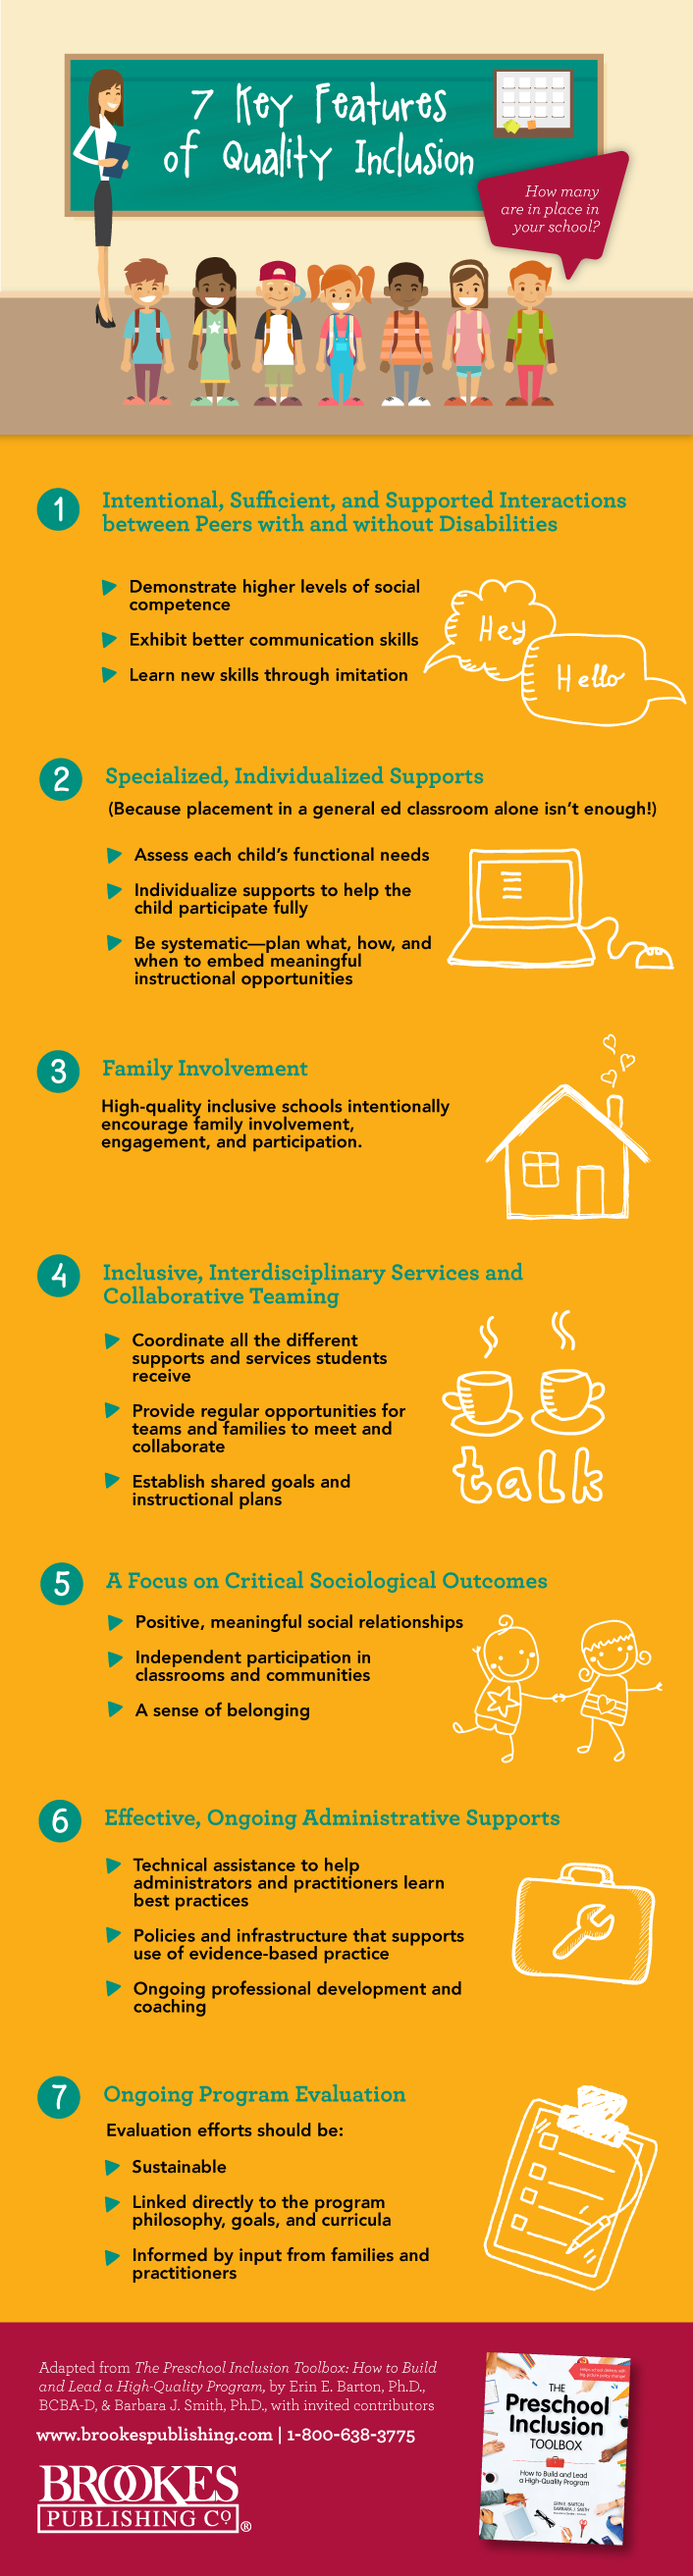 7 key features of quality inclusion